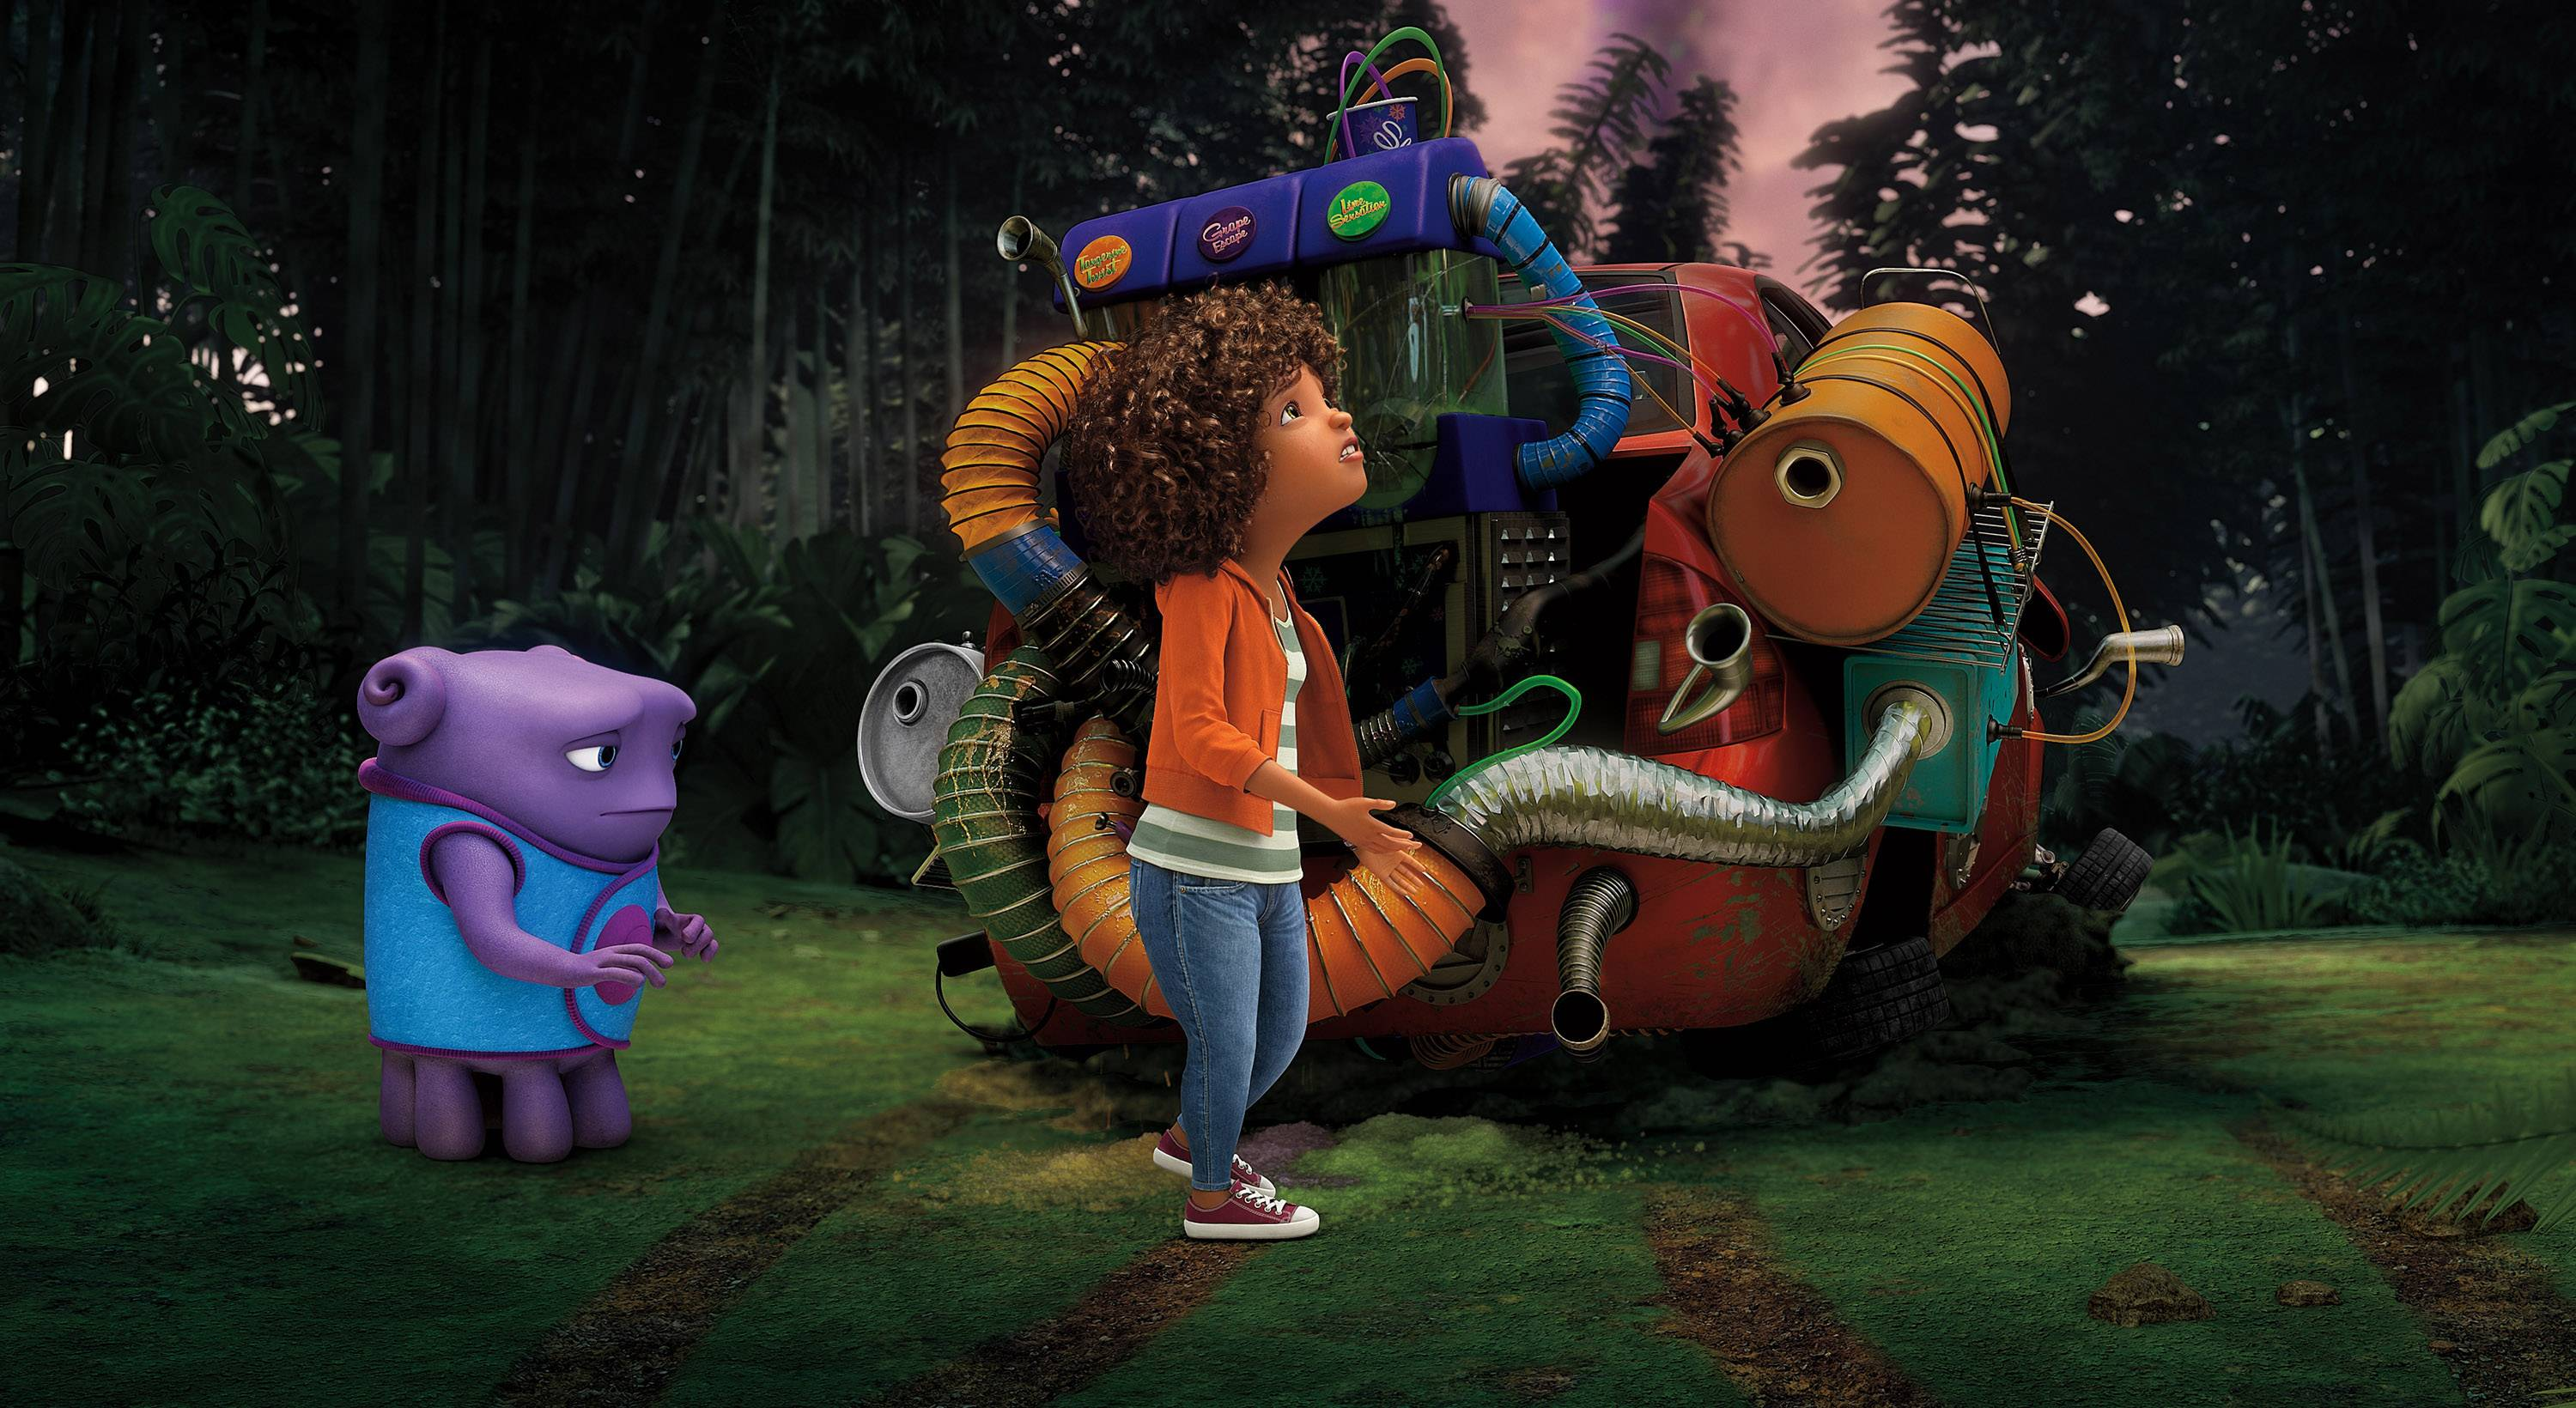 "Characters Oh, voiced by Jim Parsons, left, and Tip, voiced by Rihanna appear in a scene from the animated film ""Home,"" which took the top spot at the box office with $54 million."